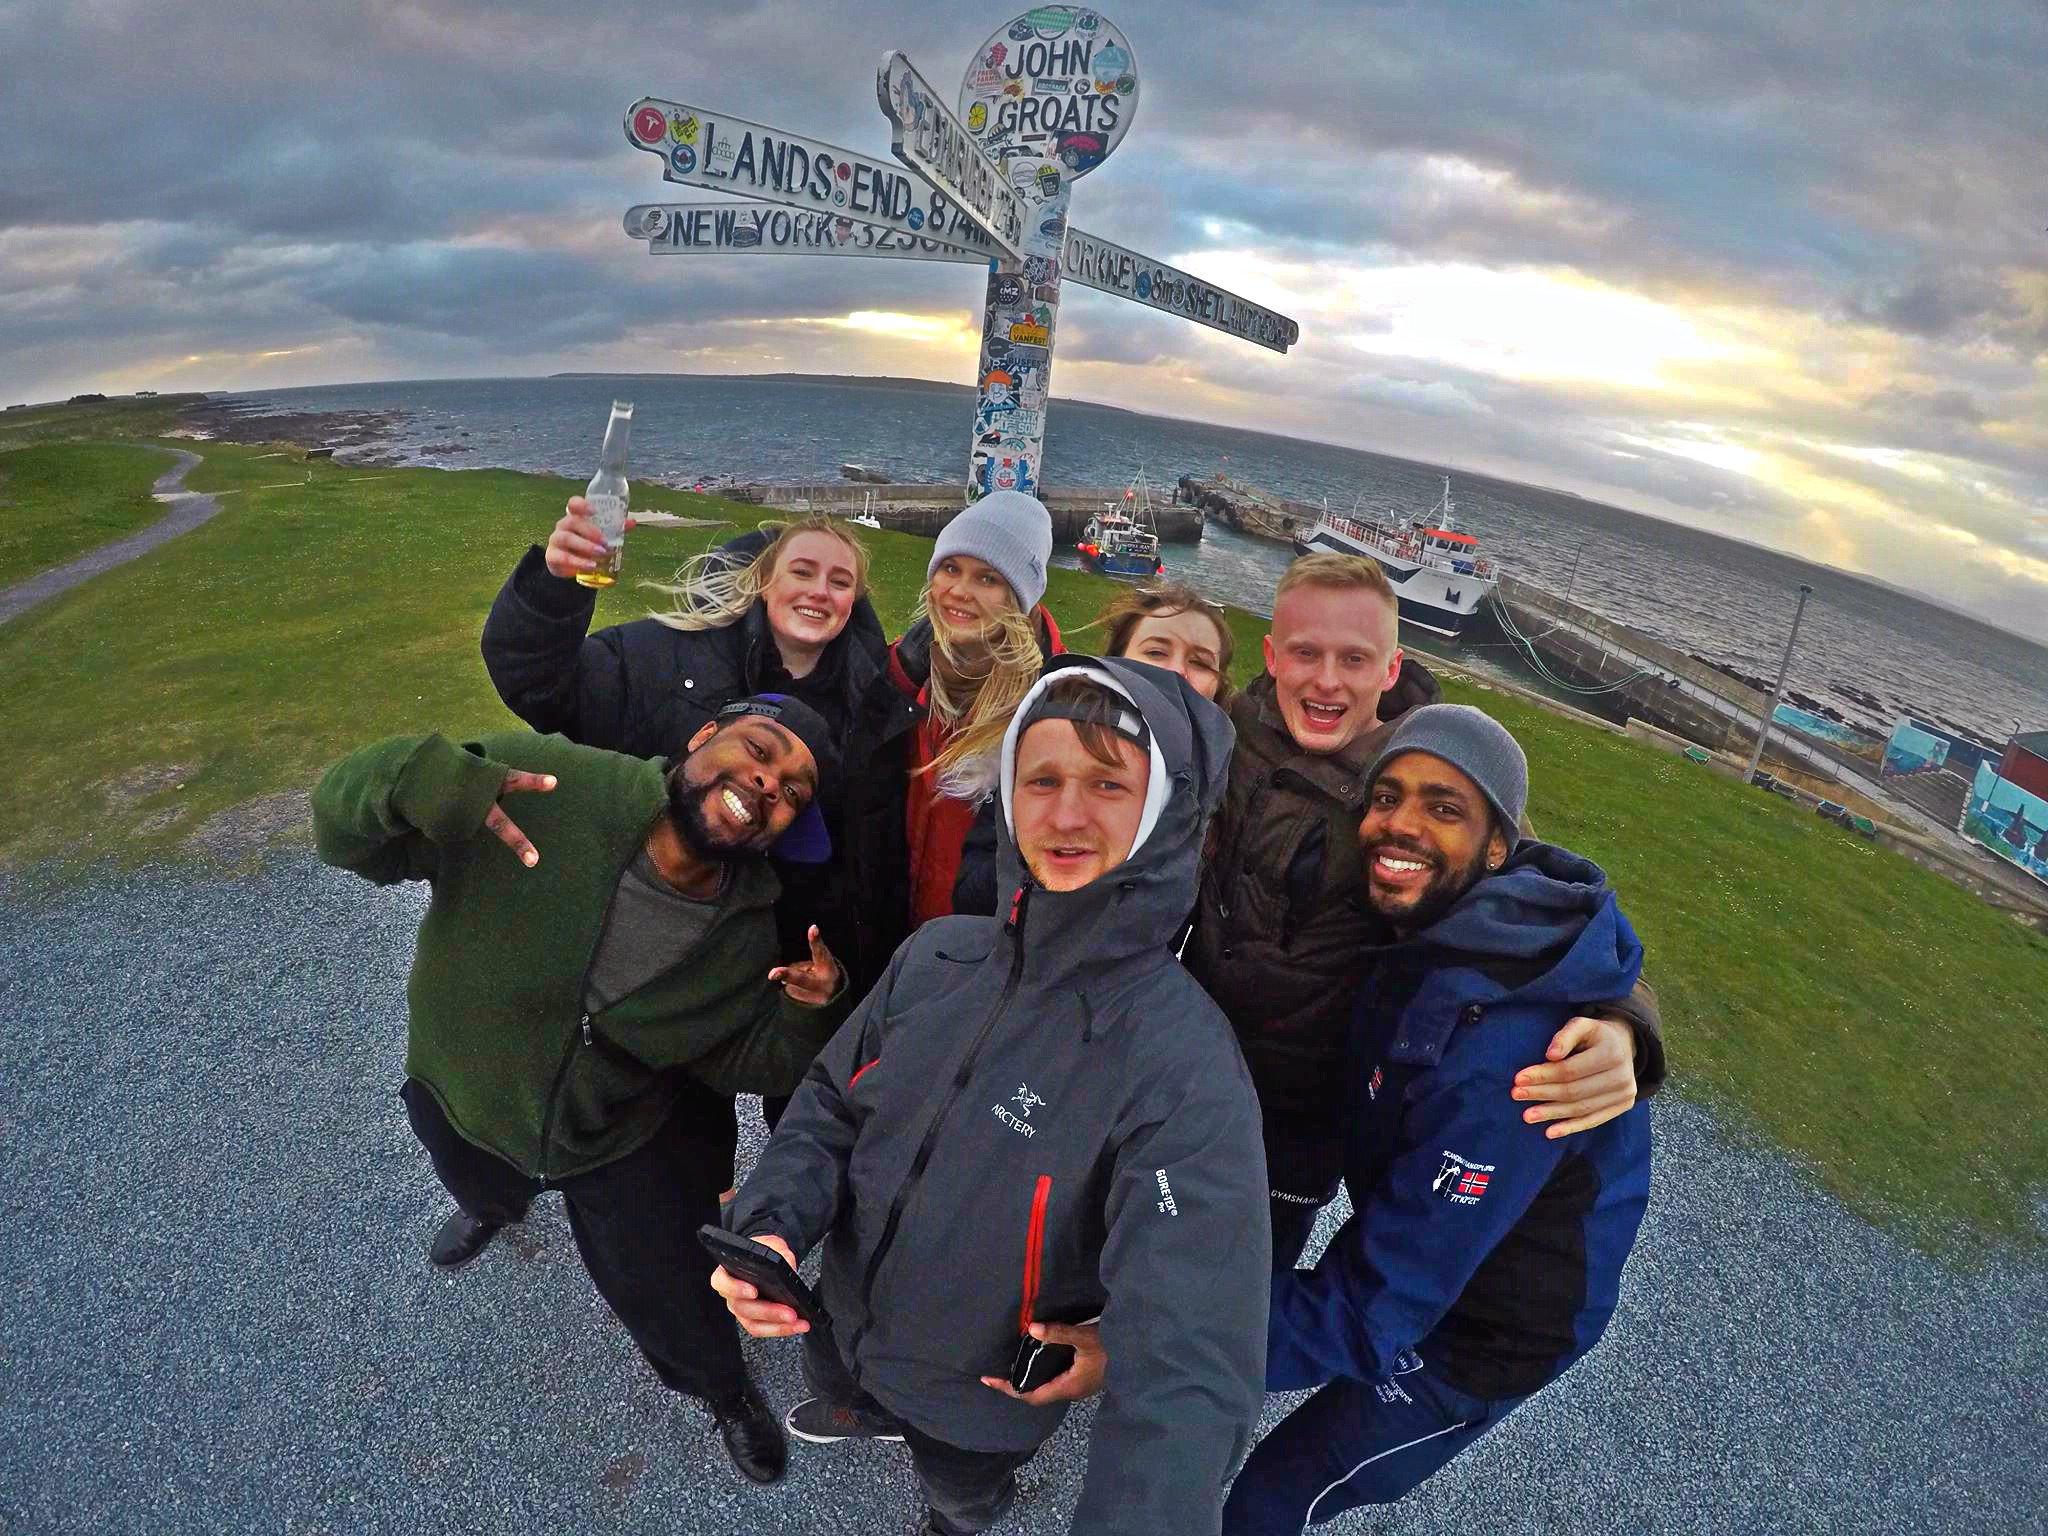 A group photo of happy people by John O Groats sign in Scotland